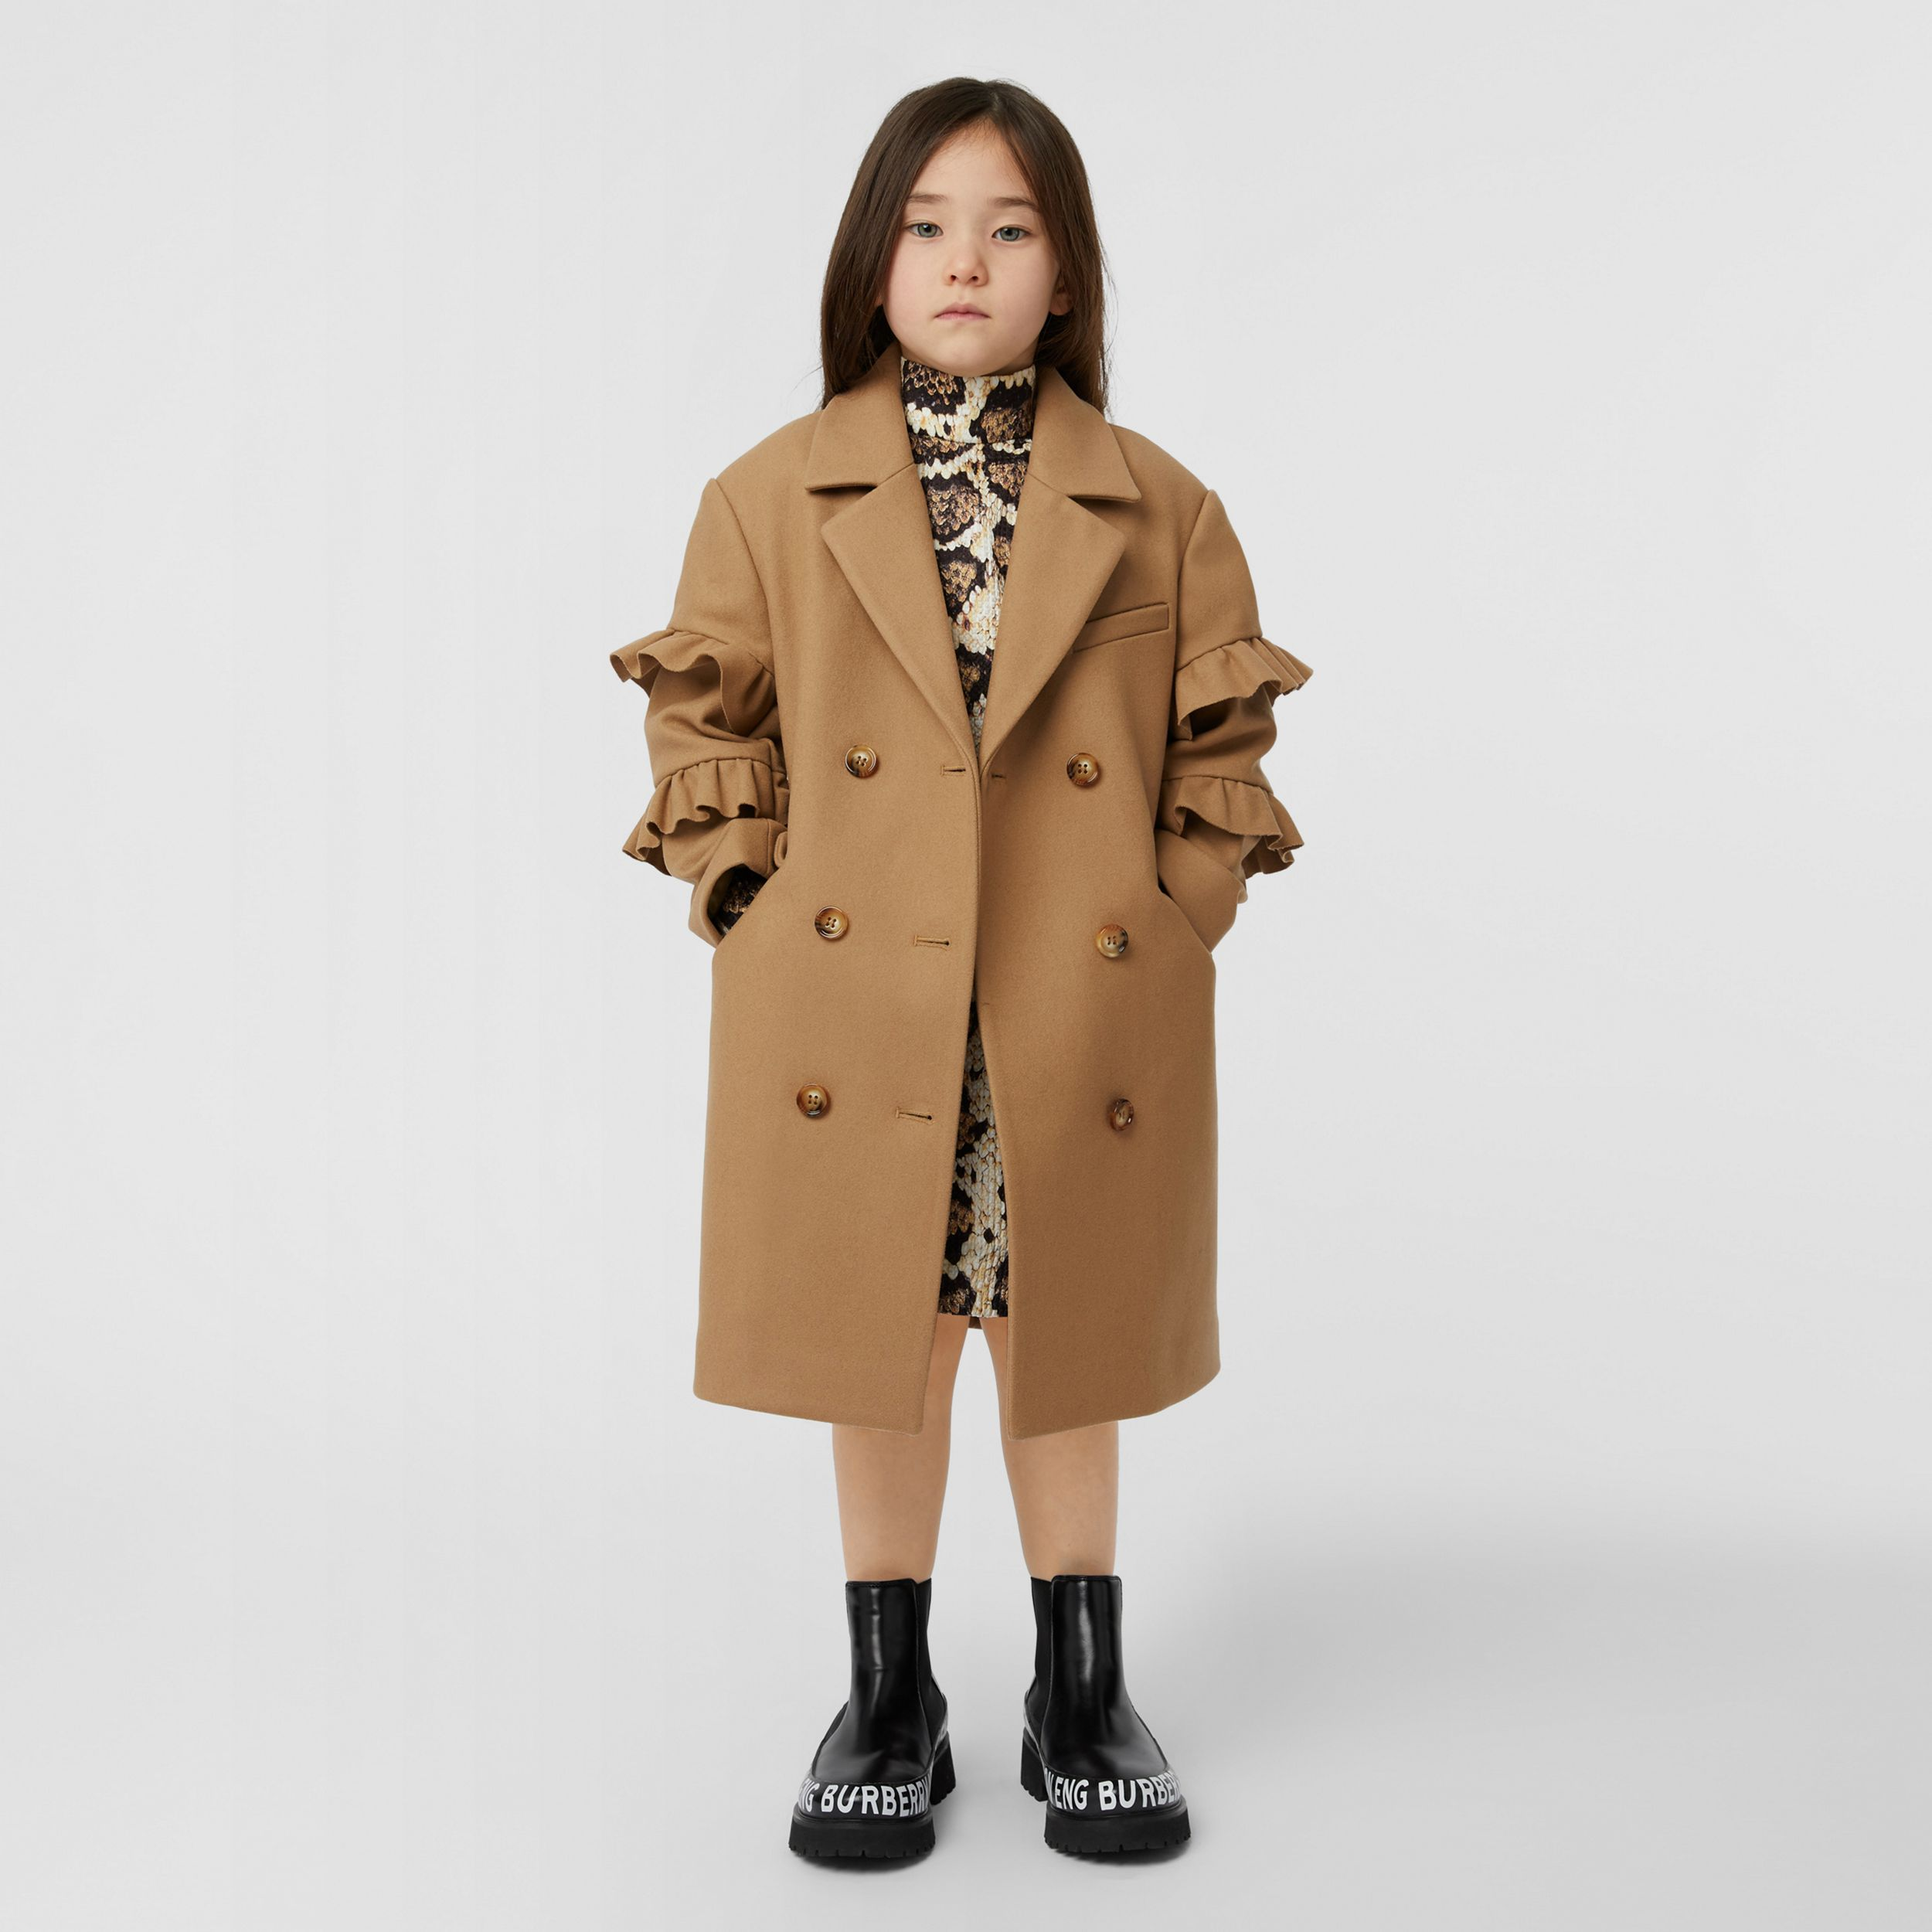 Ruffled Sleeve Wool Tailored Coat in Camel | Burberry - 3